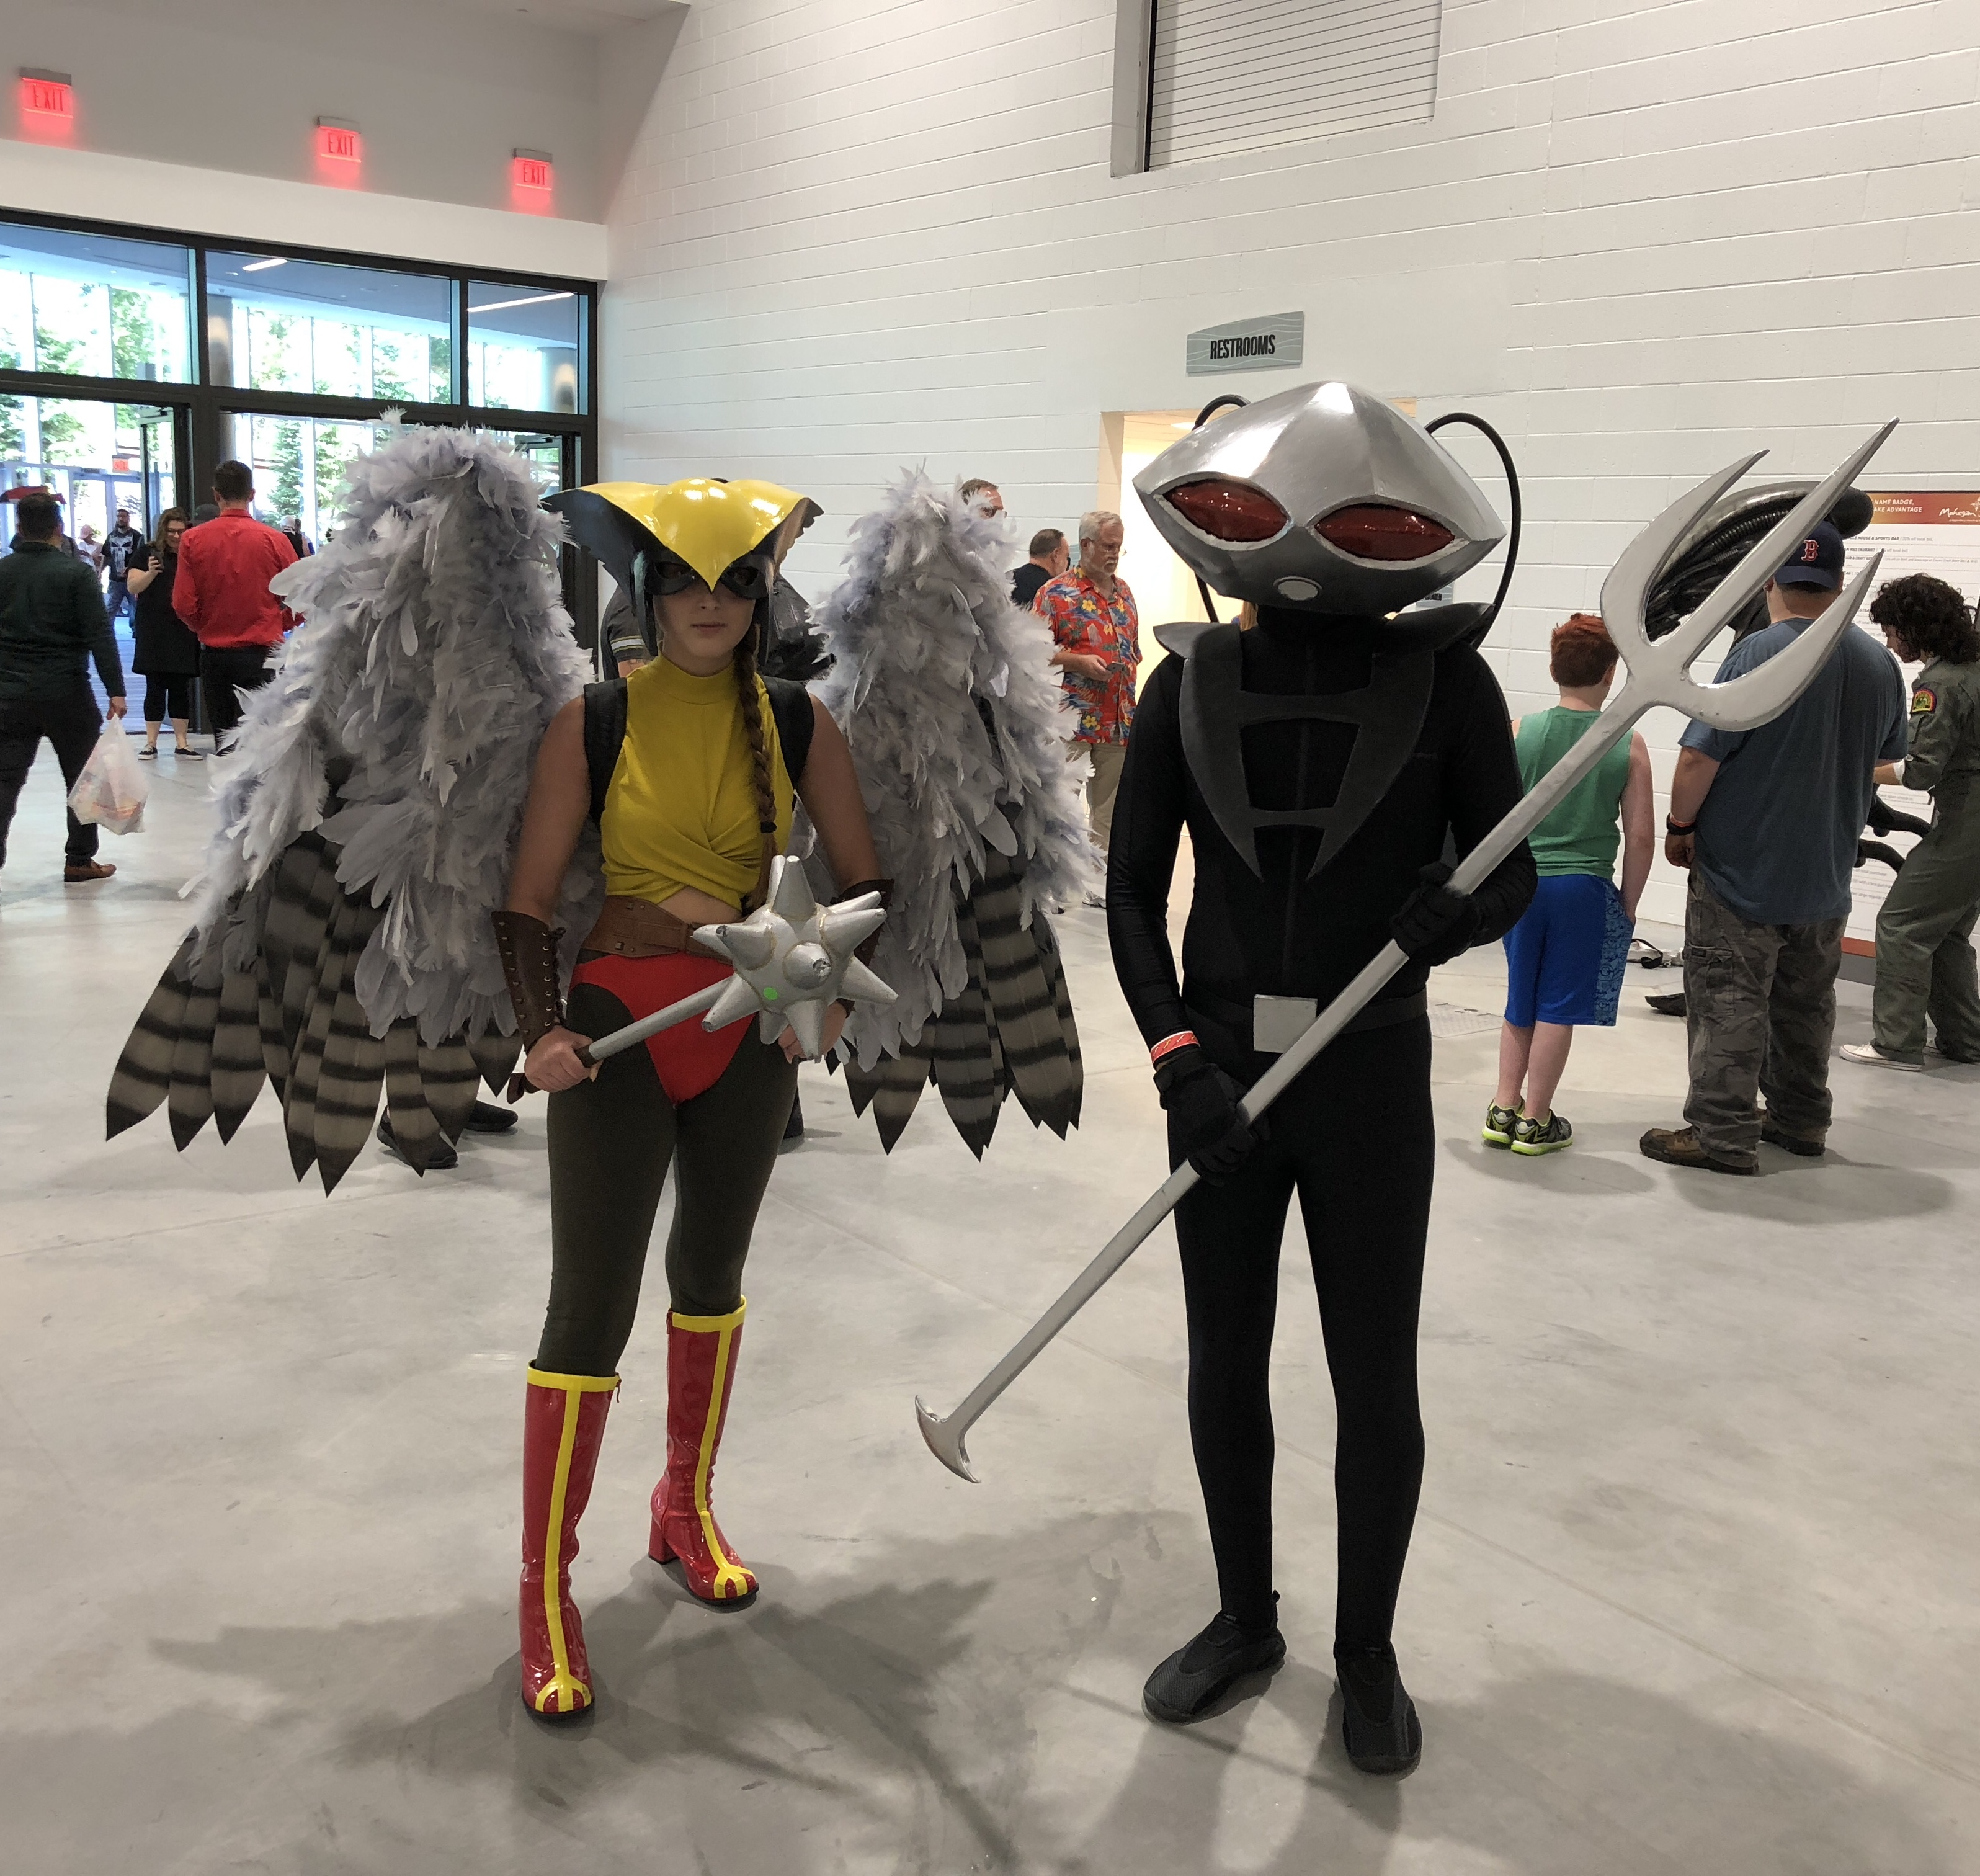 Hawkgirl and Black Mantis.